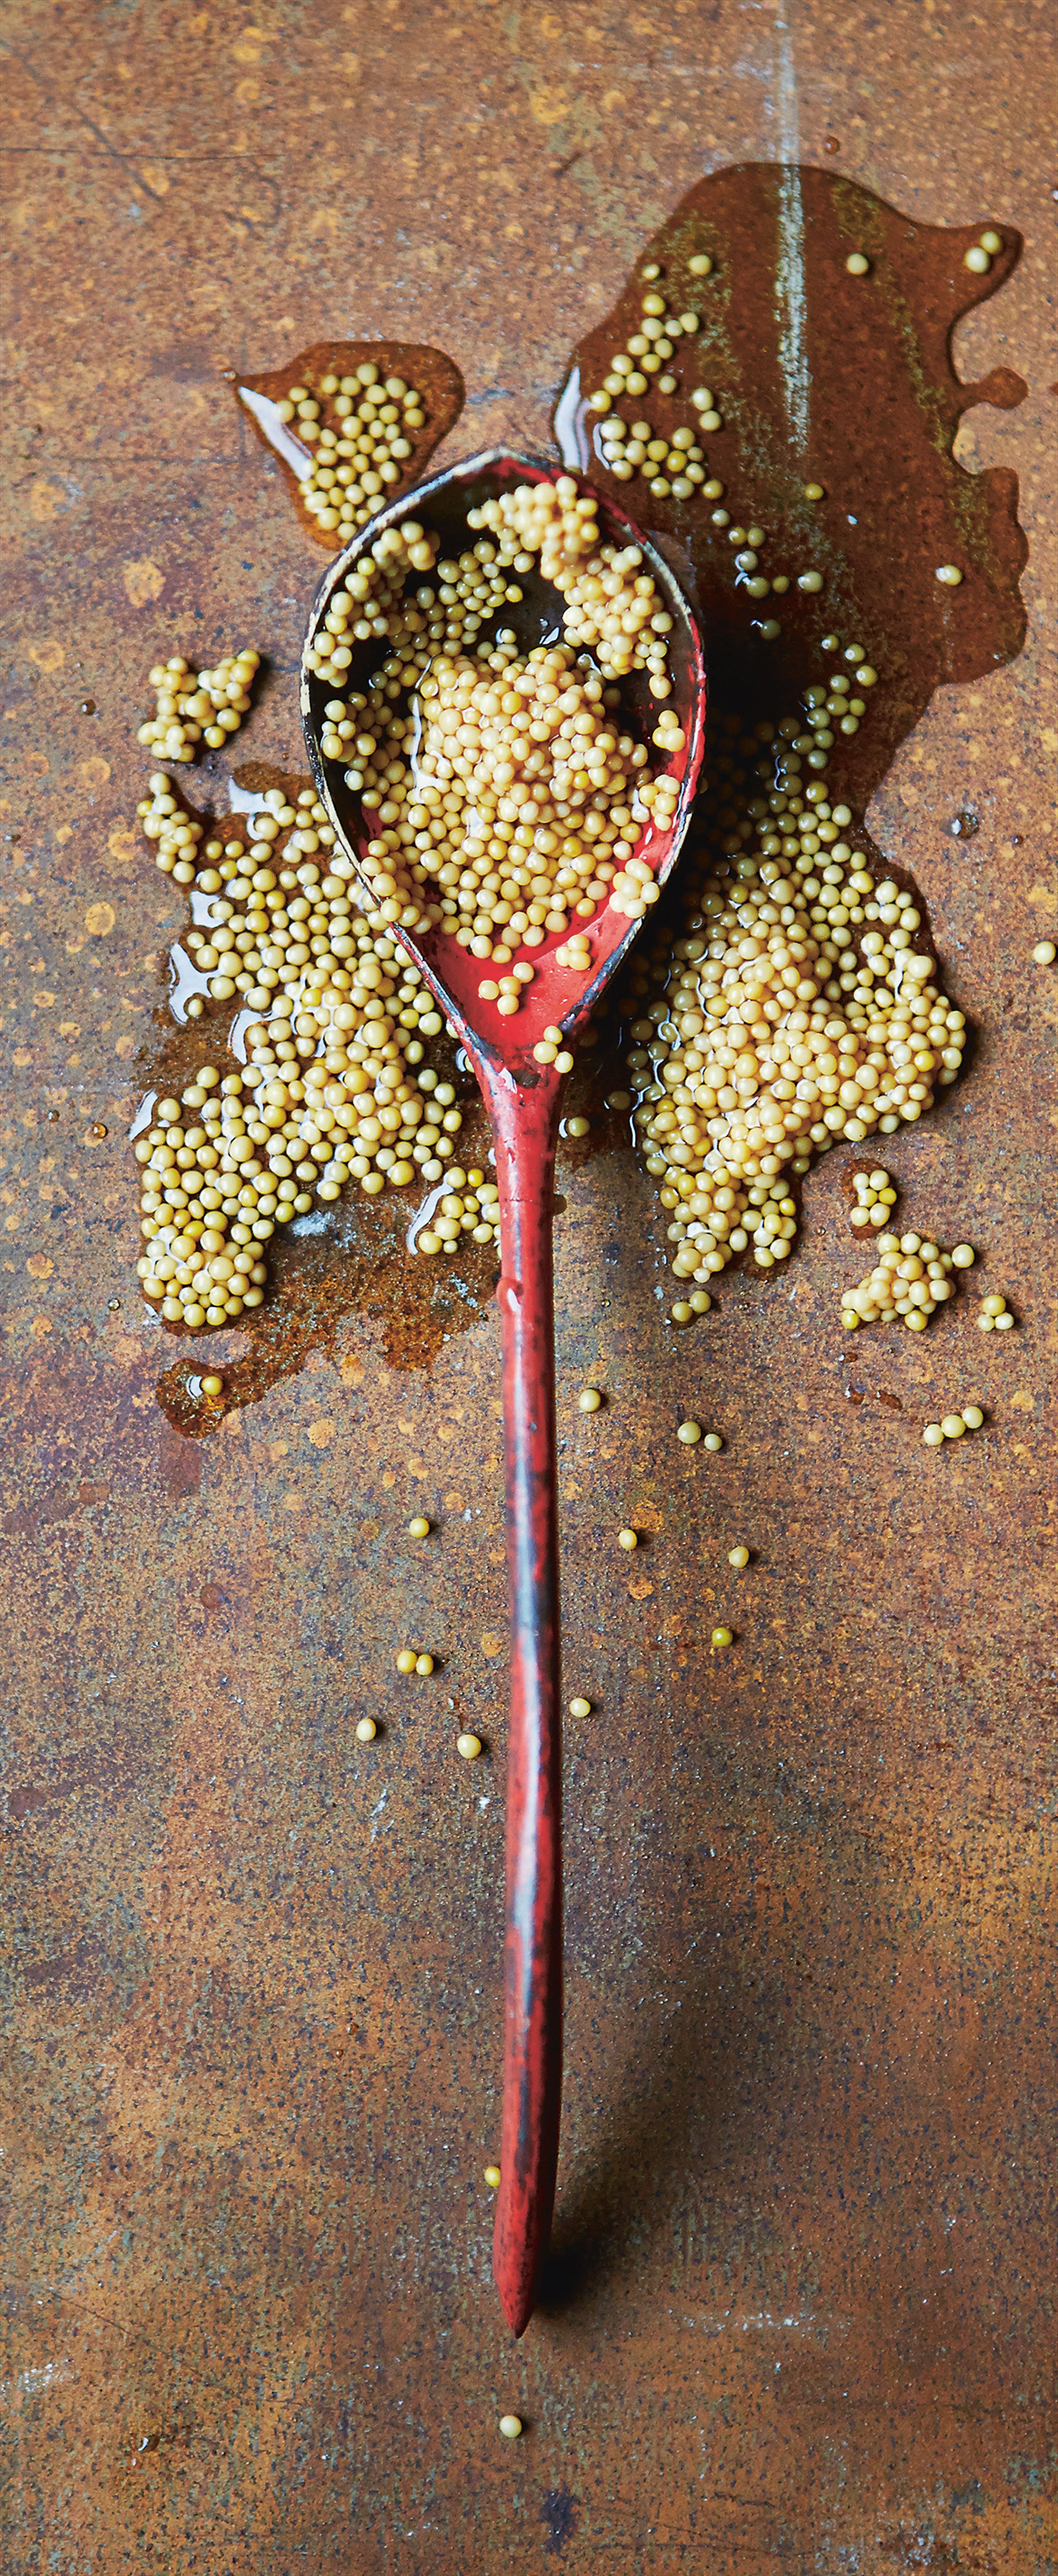 Pickled mustard seeds